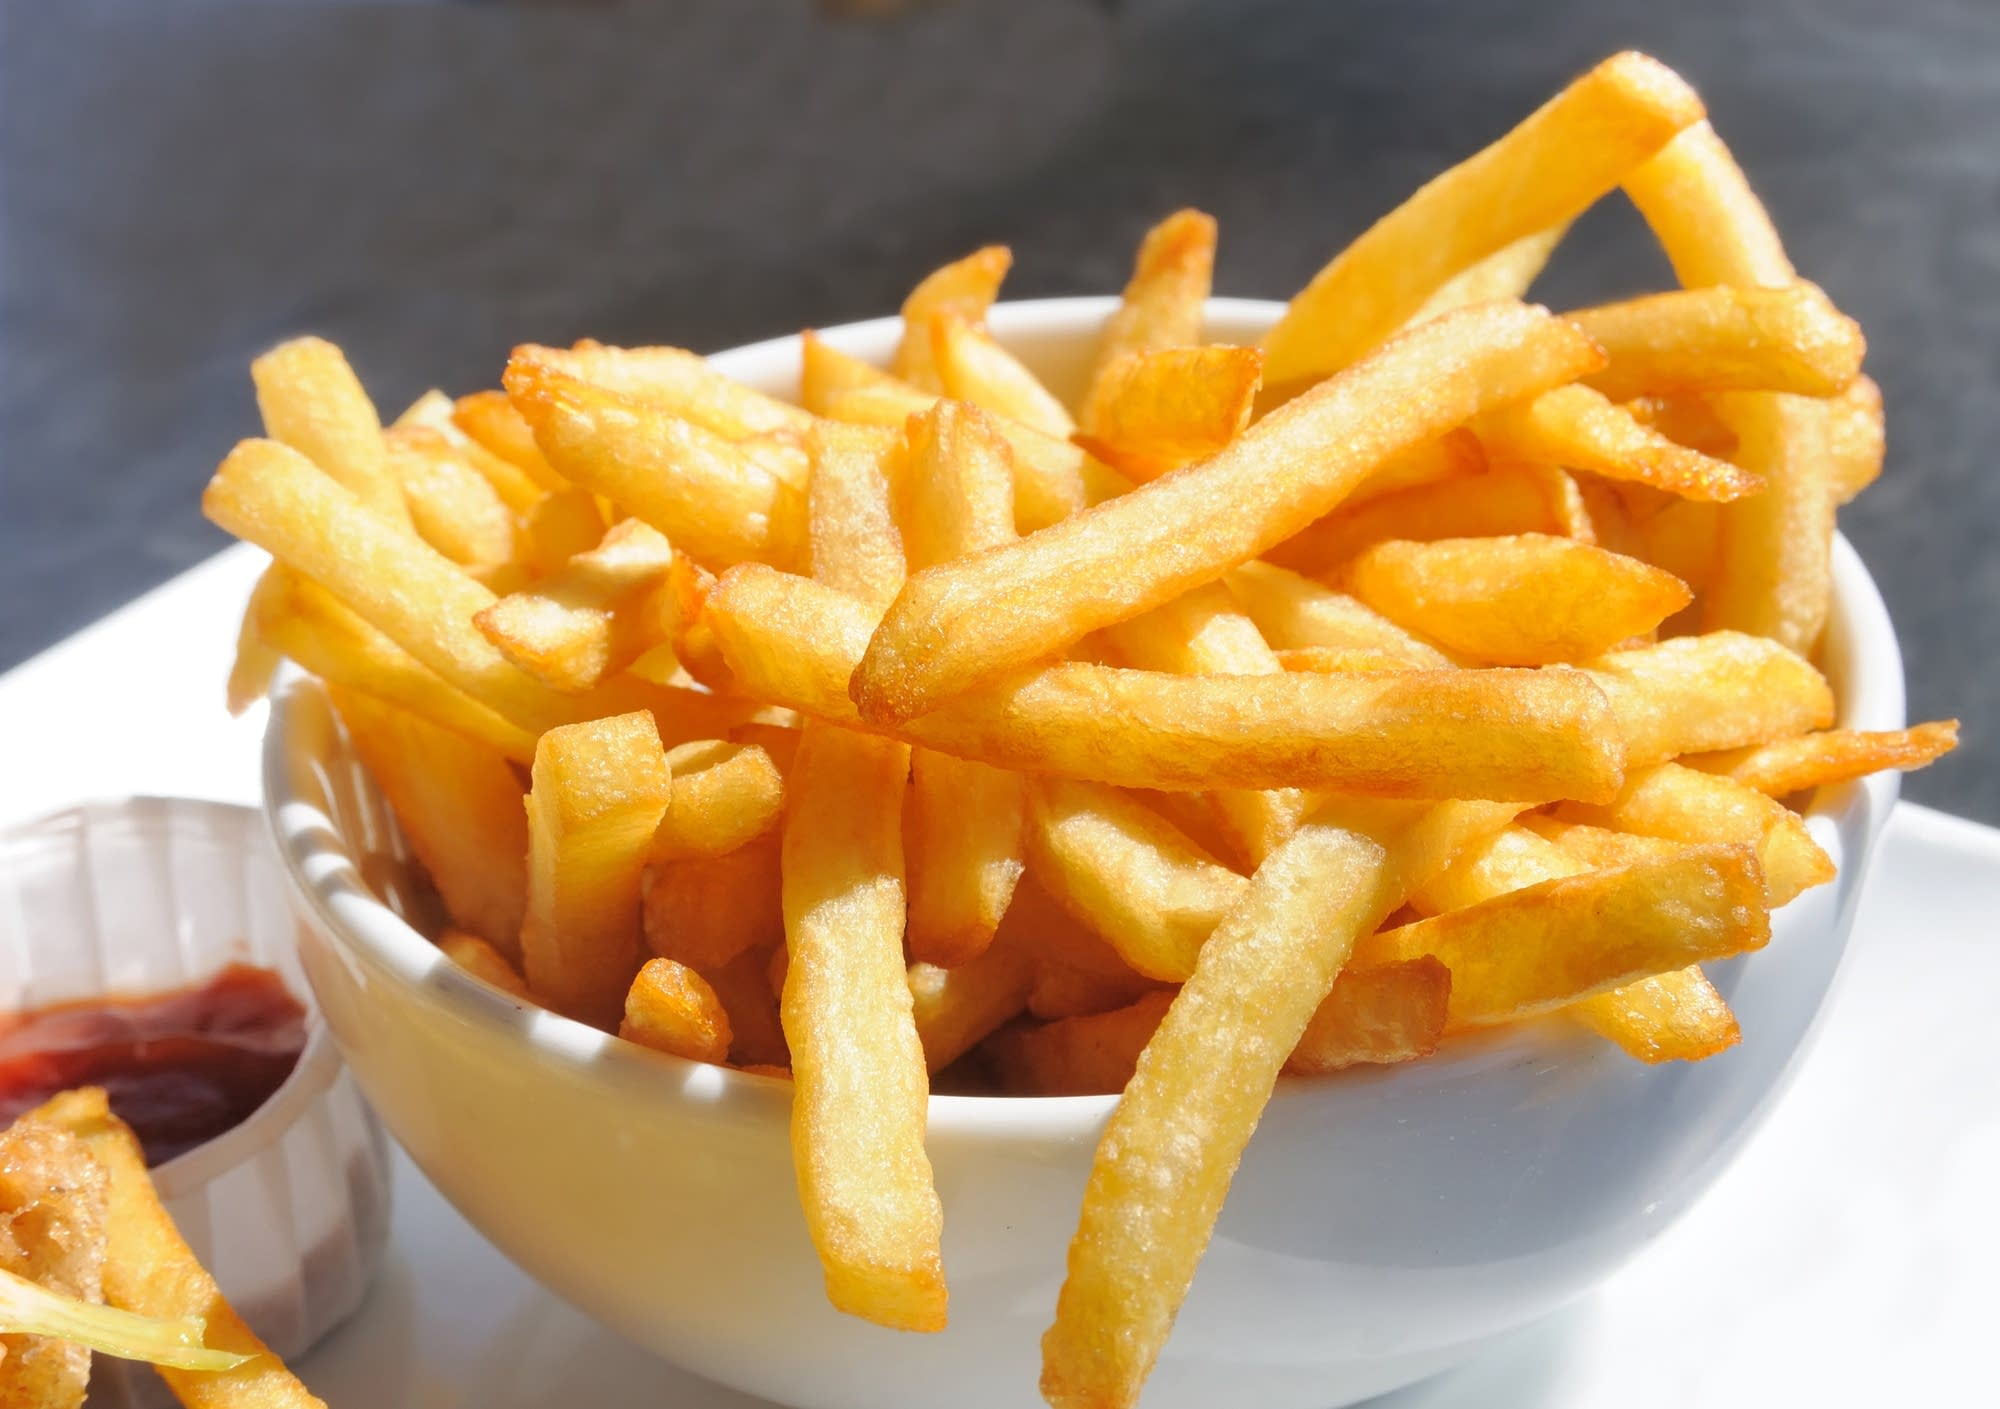 American French Fries | The Splendid Table